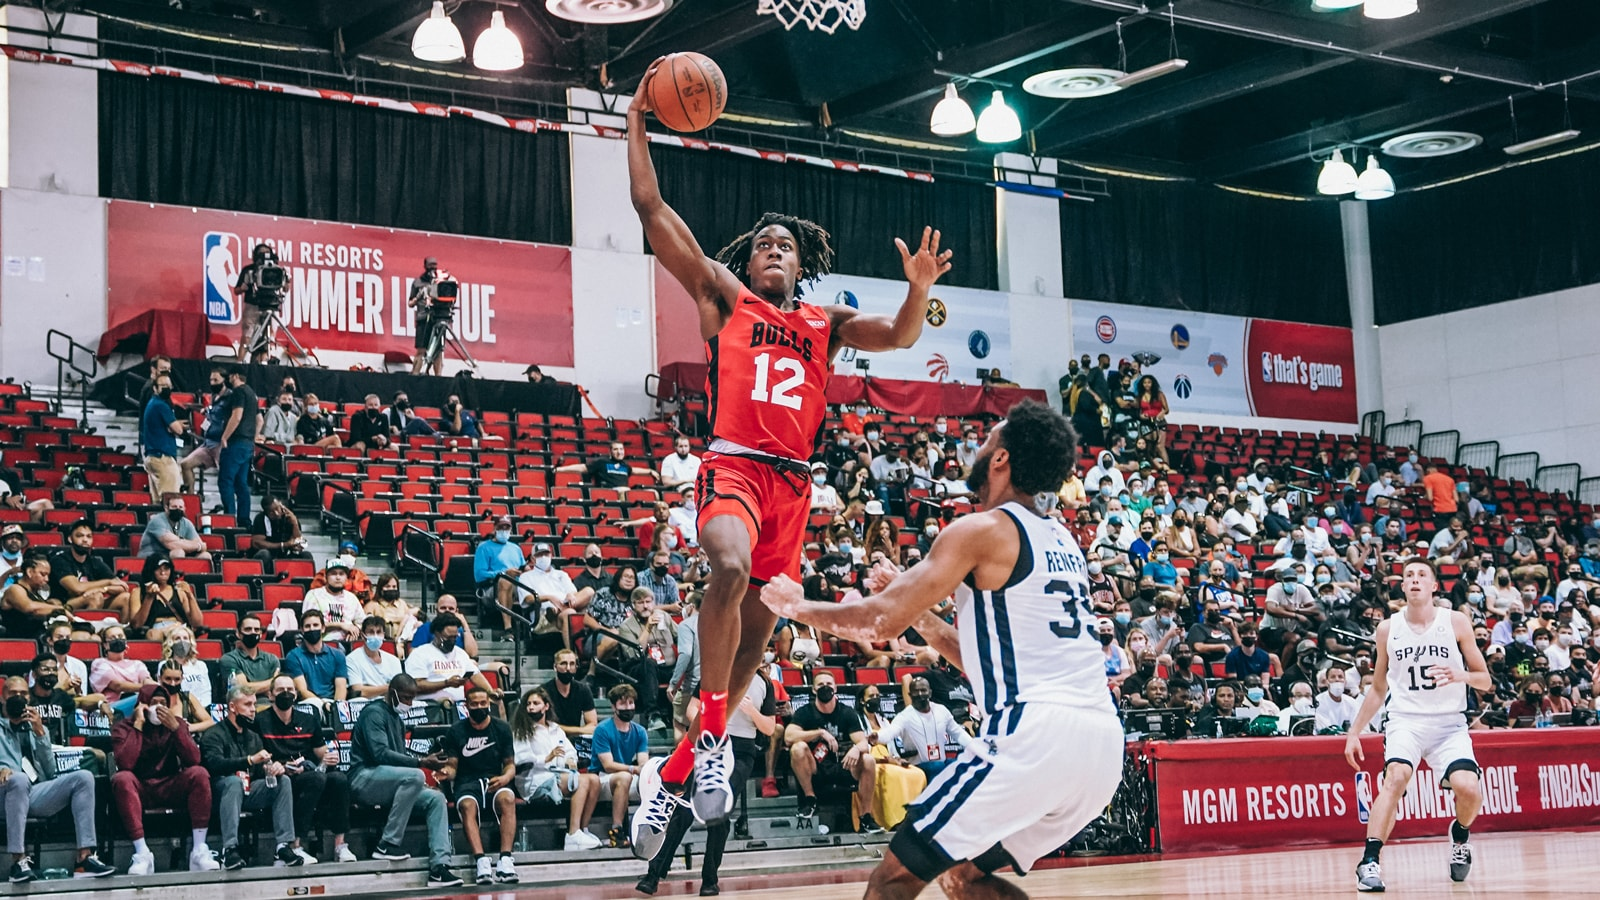 Ayo Dosunmu rises up for a transition dunk against the Spurs in Summer League